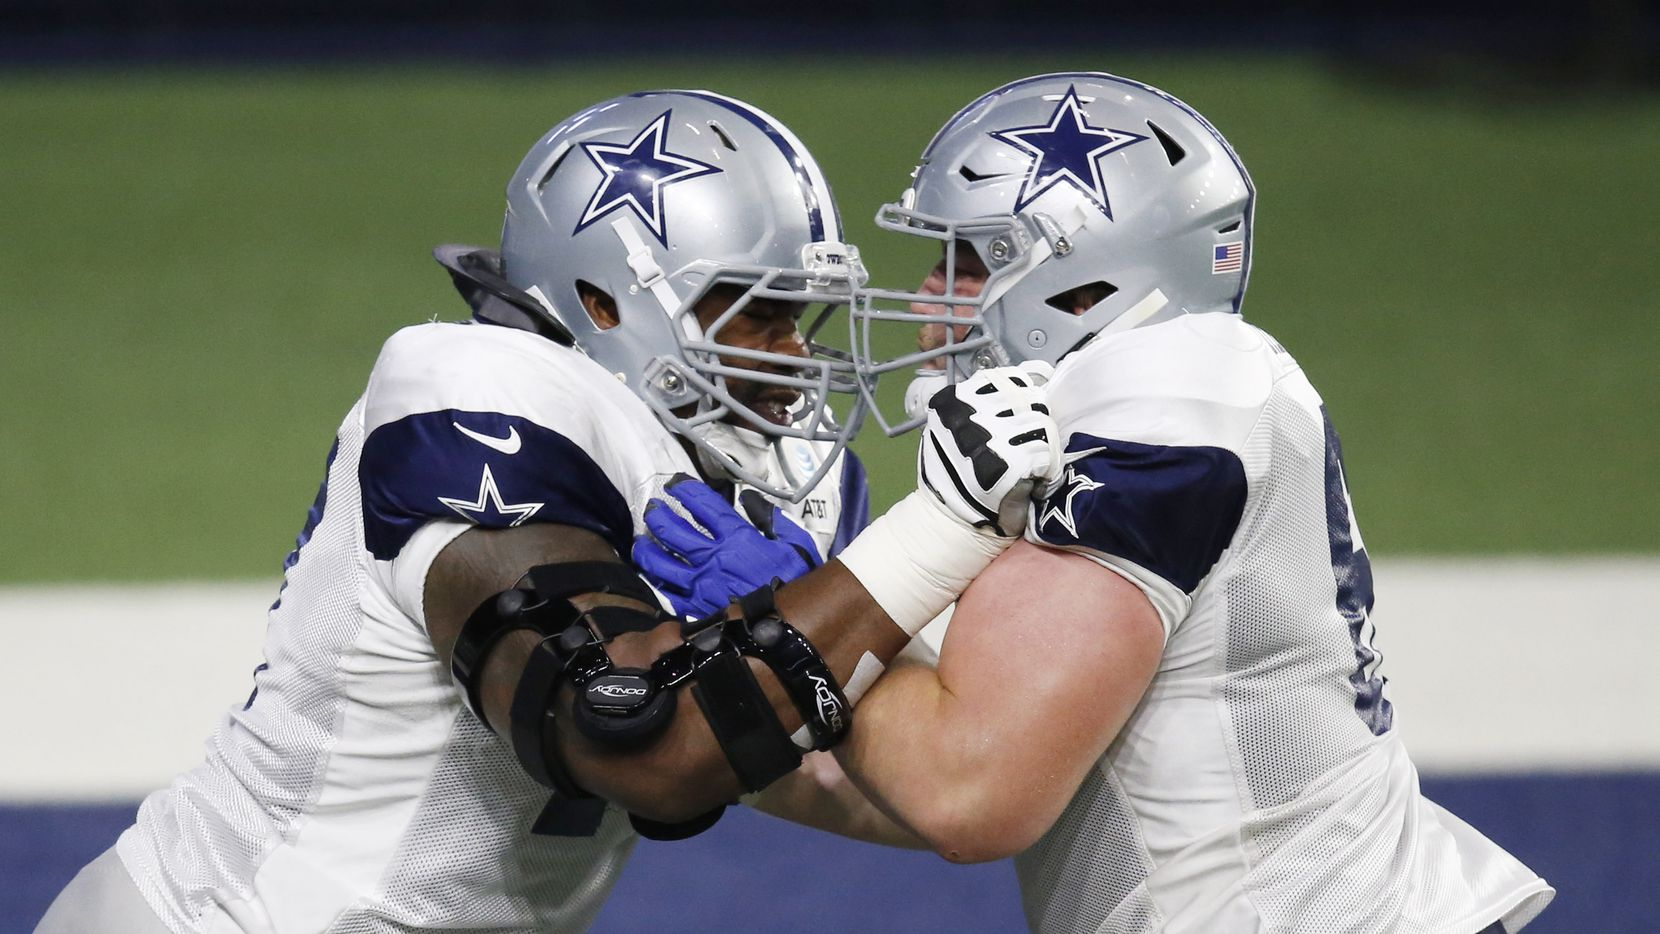 Dallas Cowboys offensive tackle Tyron Smith (77) blocks Dallas Cowboys center Adam Redmond (61) in a drill during training camp at the Dallas Cowboys headquarters at The Star in Frisco, Texas on Thursday, August 27, 2020.